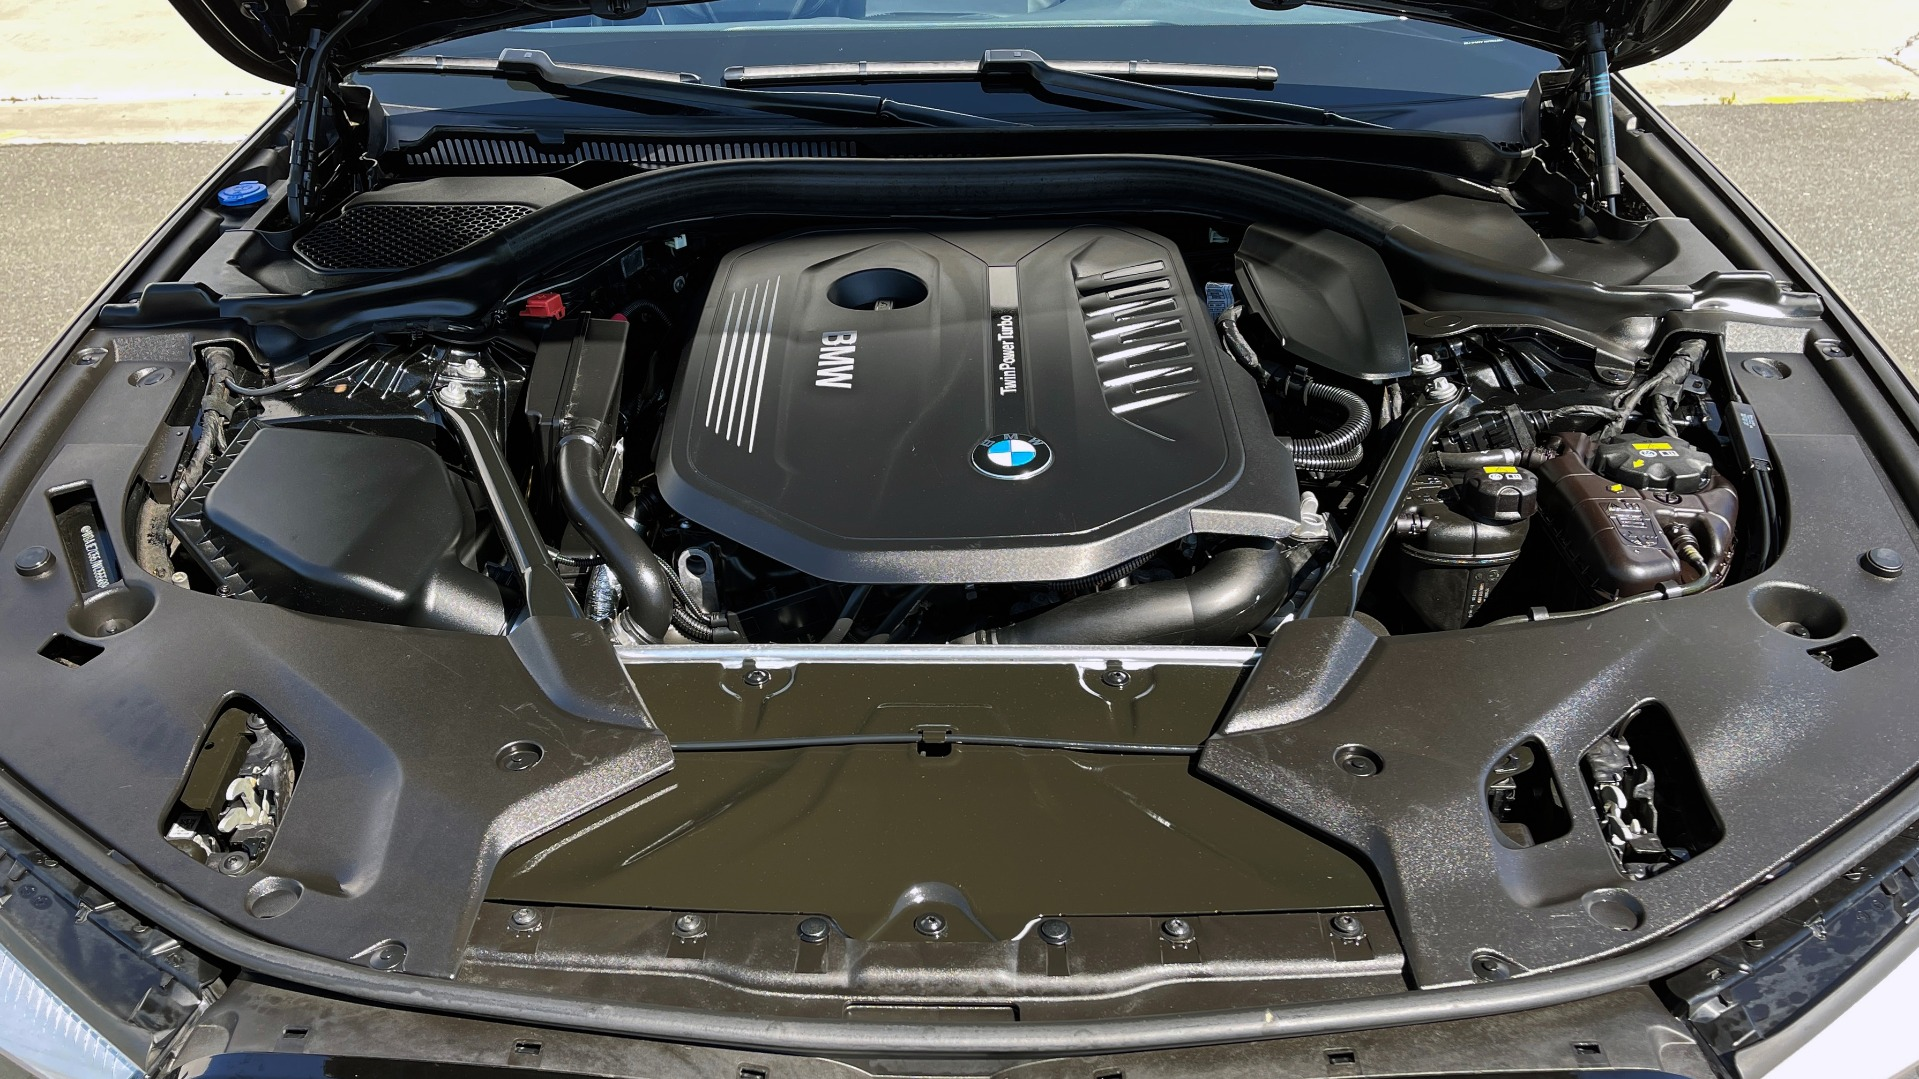 Used 2018 BMW 5 SERIES 540I XDRIVE PREMIUM / NAV / PARK ASST / WIRELESS CHARGING H/K SND for sale $38,395 at Formula Imports in Charlotte NC 28227 9